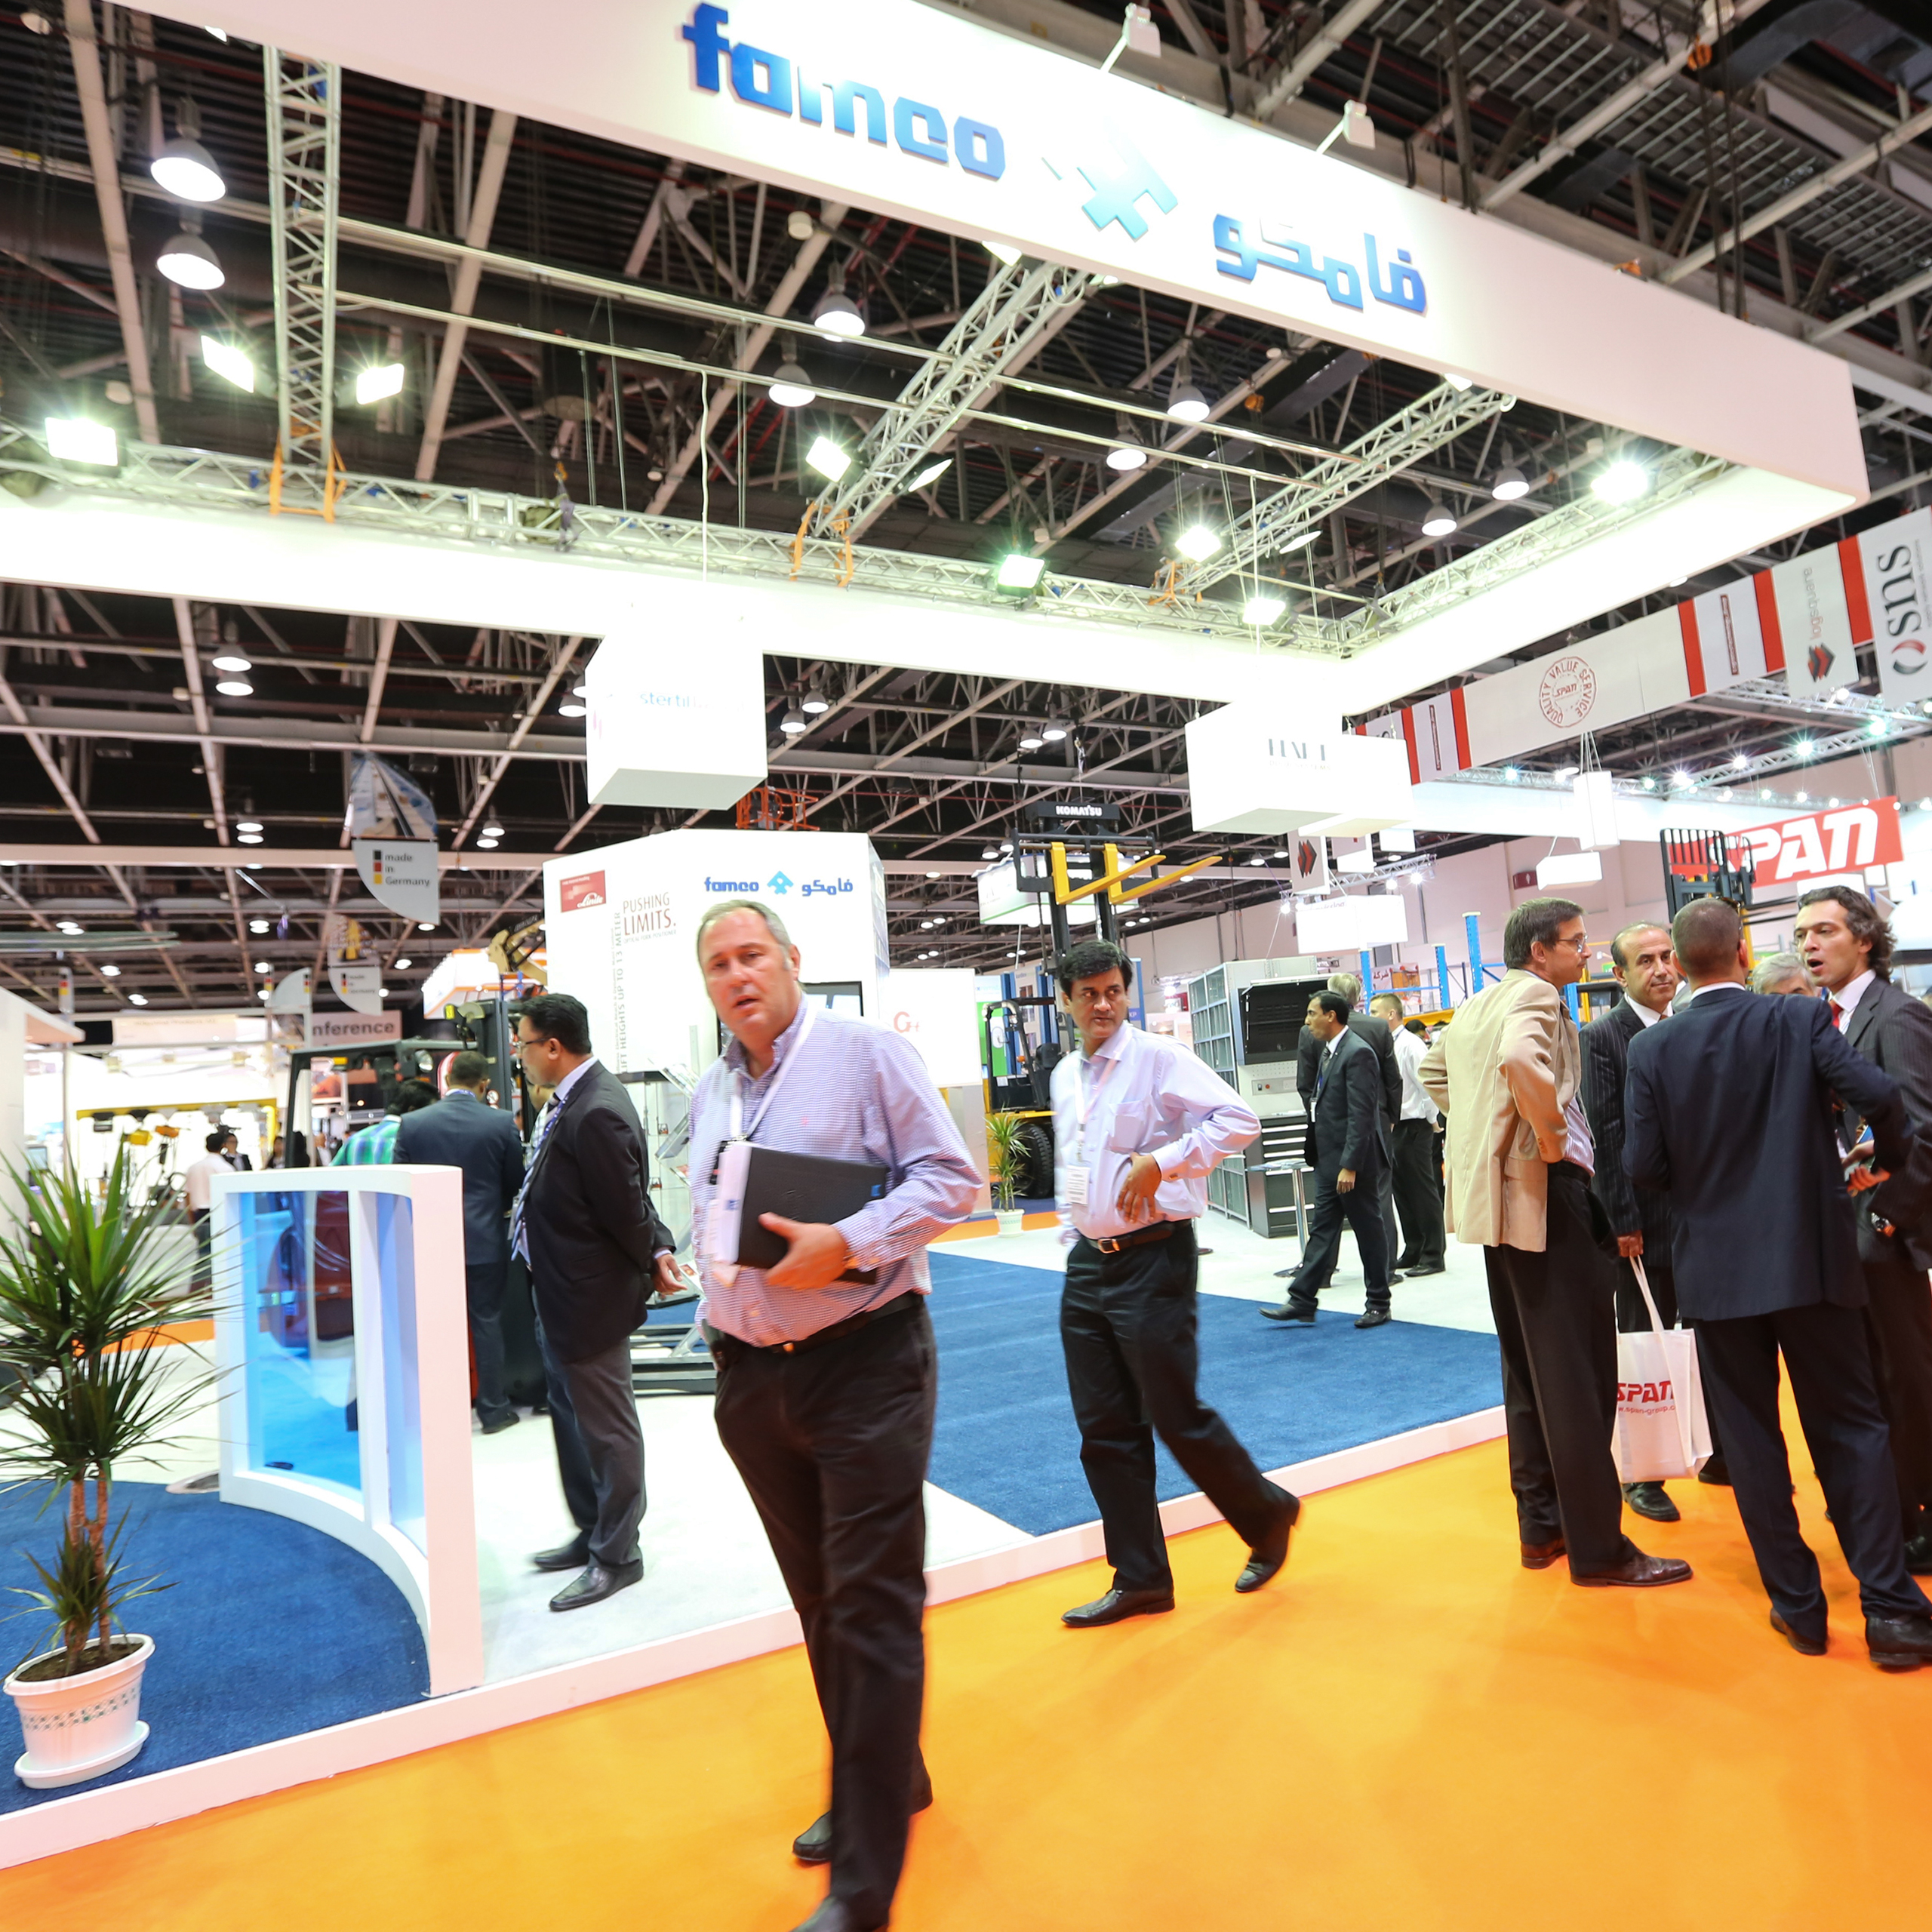 Materials Handling Middle East - FAMCO spearheads UAE charge at Materials Handling Middle East 2015 with latest warehousing and storage solutions